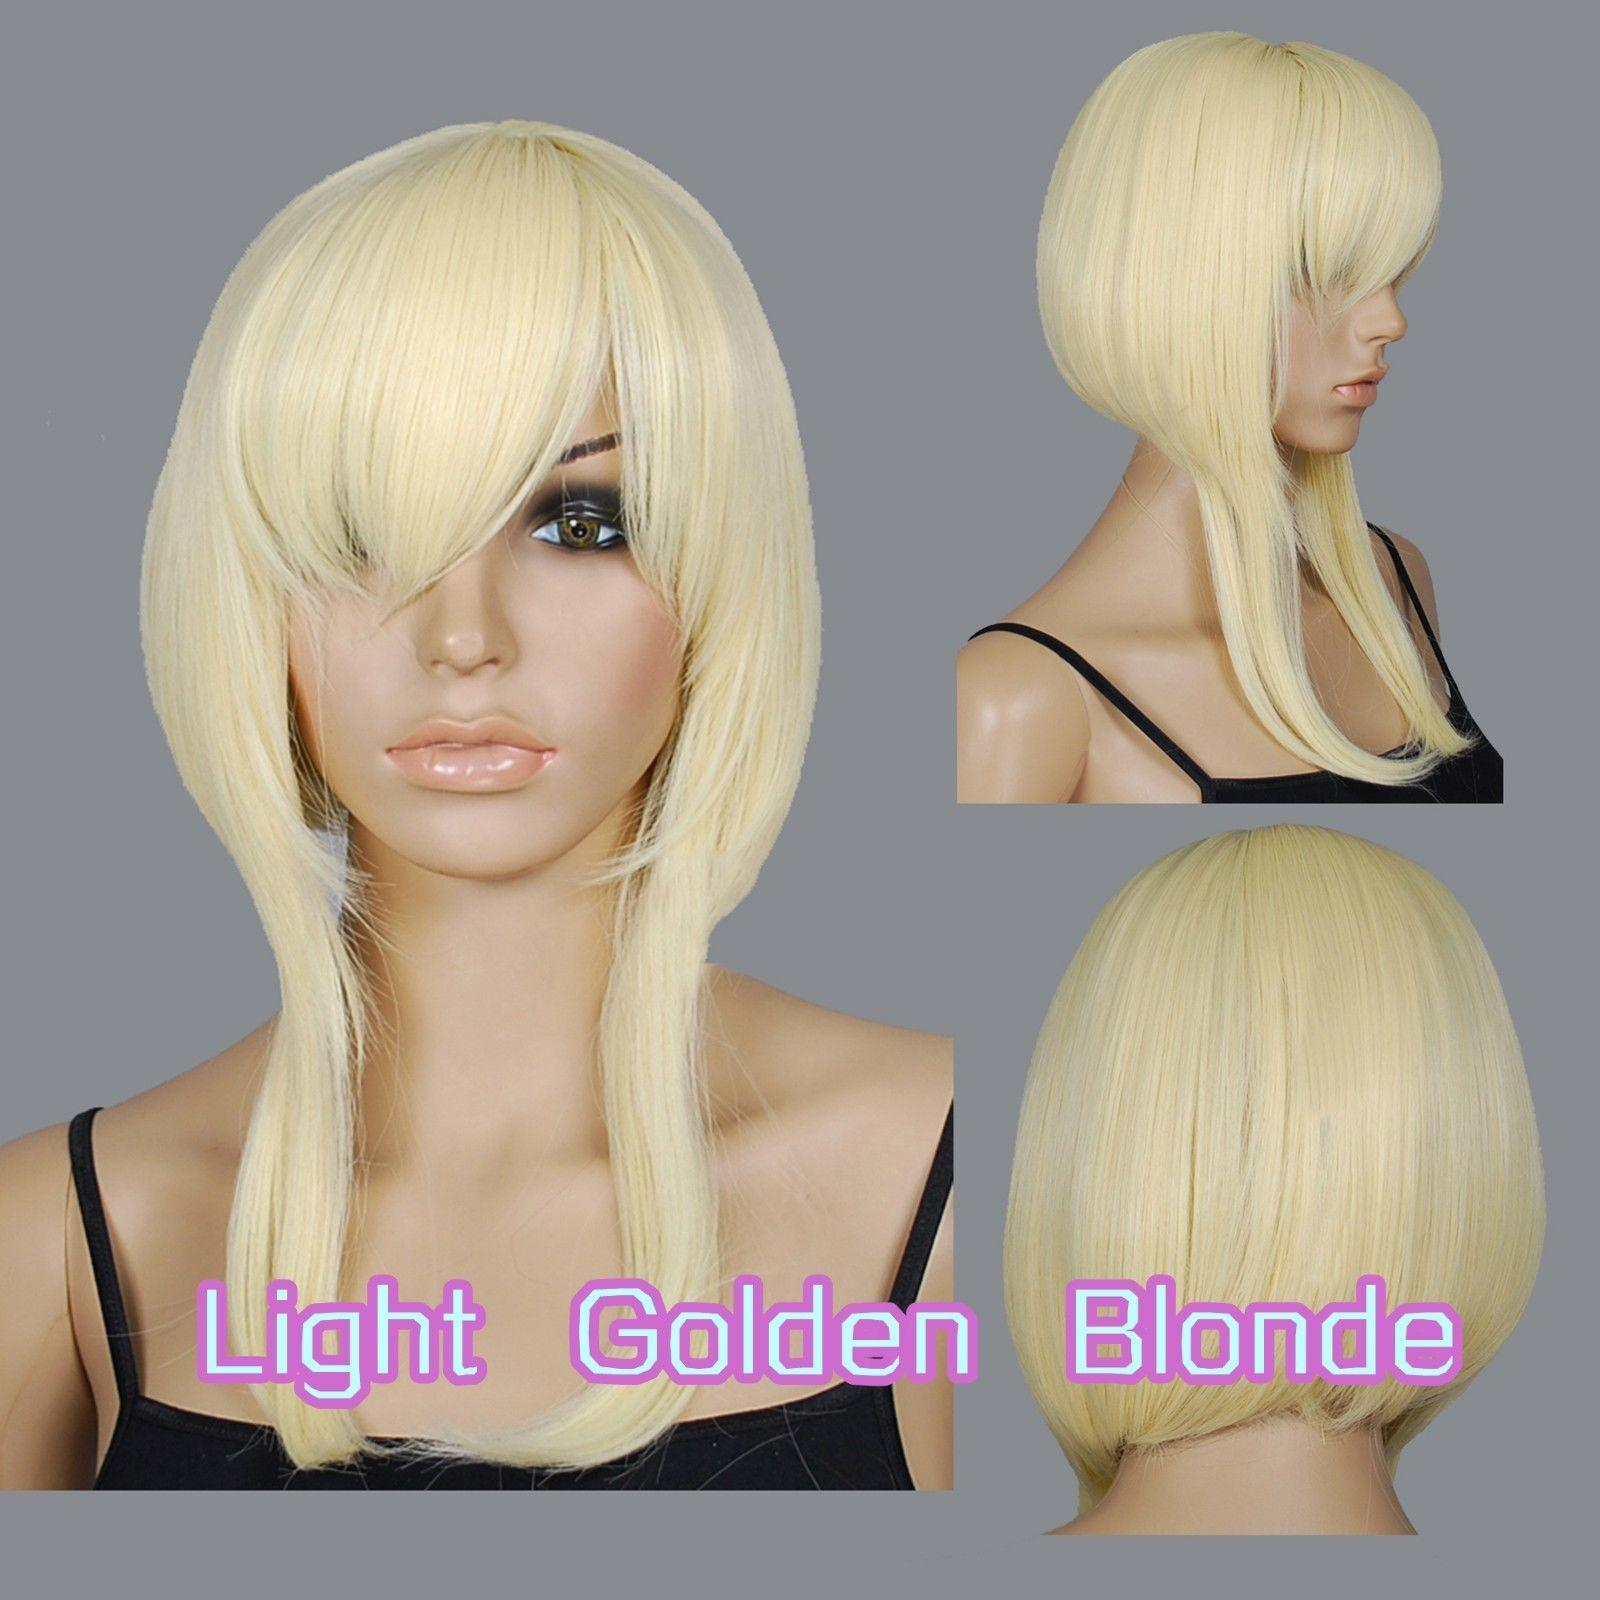 2018 40cm Light Golden Blonde Heat Styleable Layered Blunt Cut Cosplay Wigs  73_lgb From Dong1227, $22.49 | Dhgate.Com